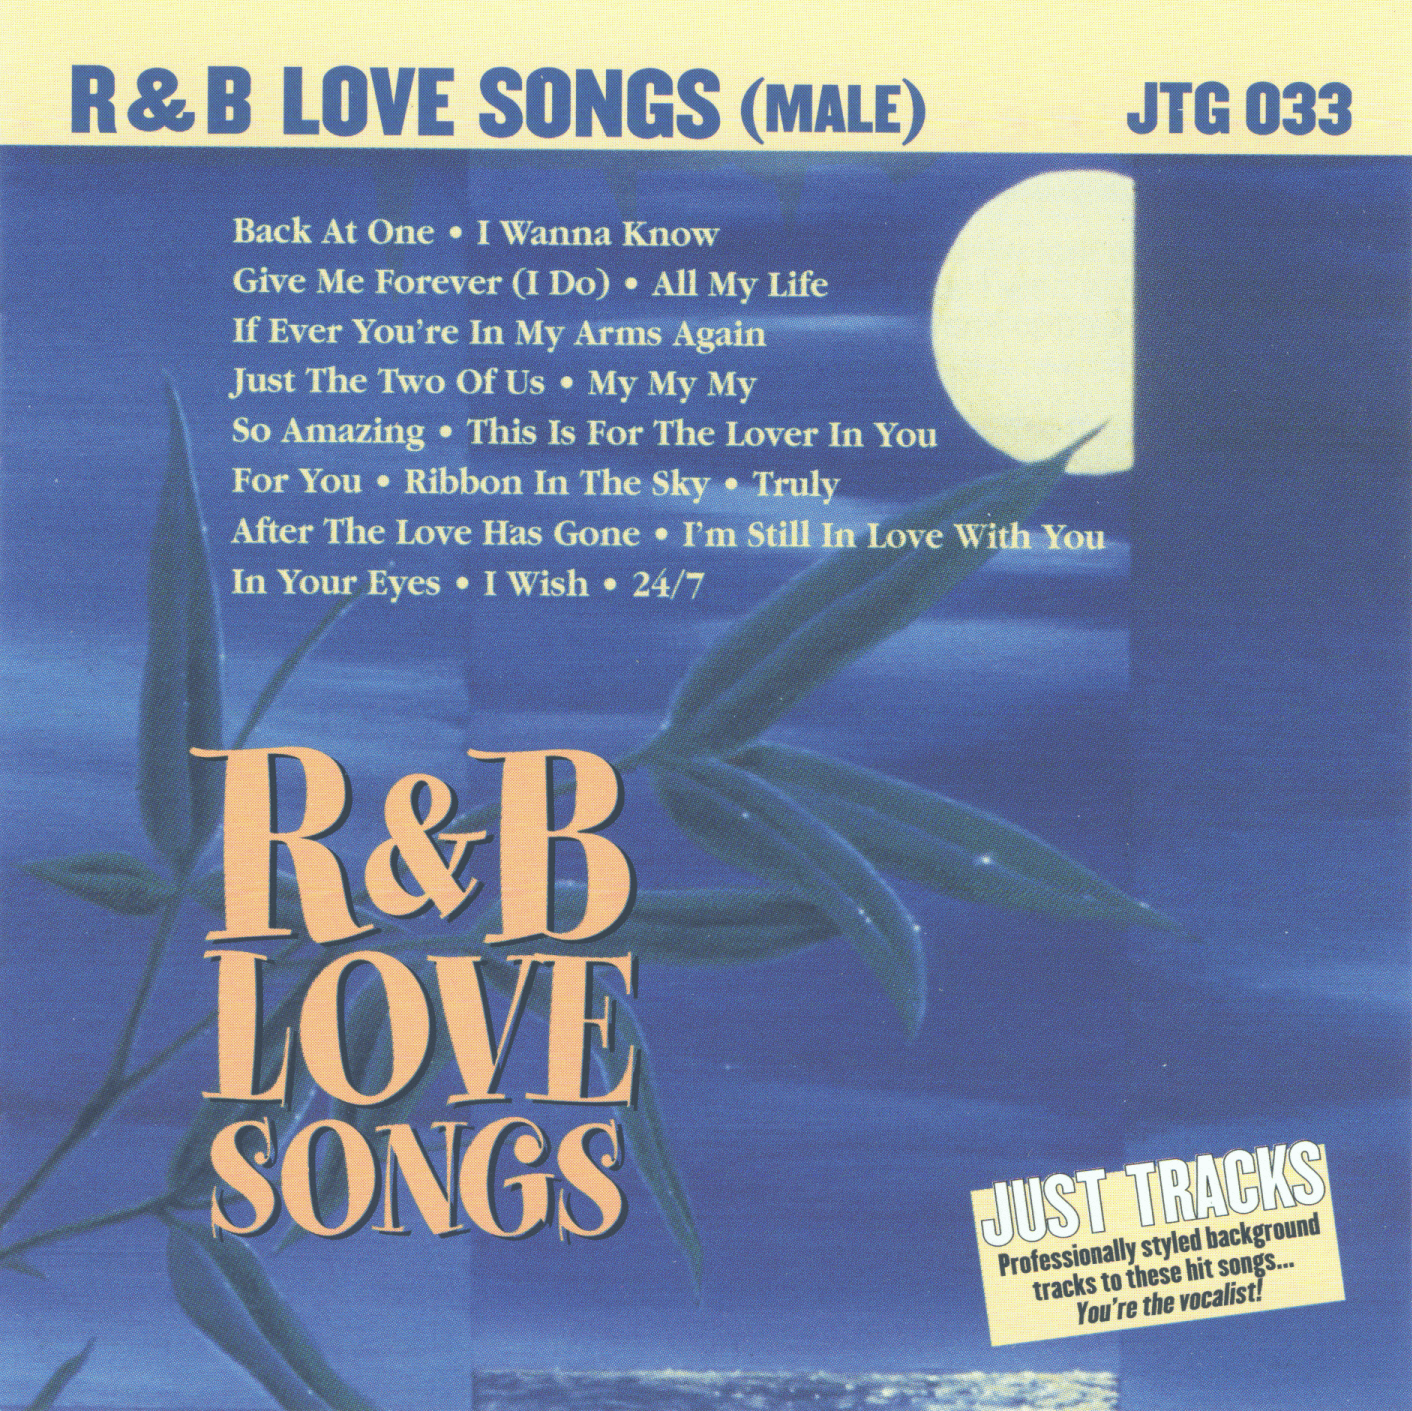 R&B LOVE SONGS (MALE)  Just Tracks  JTG 033